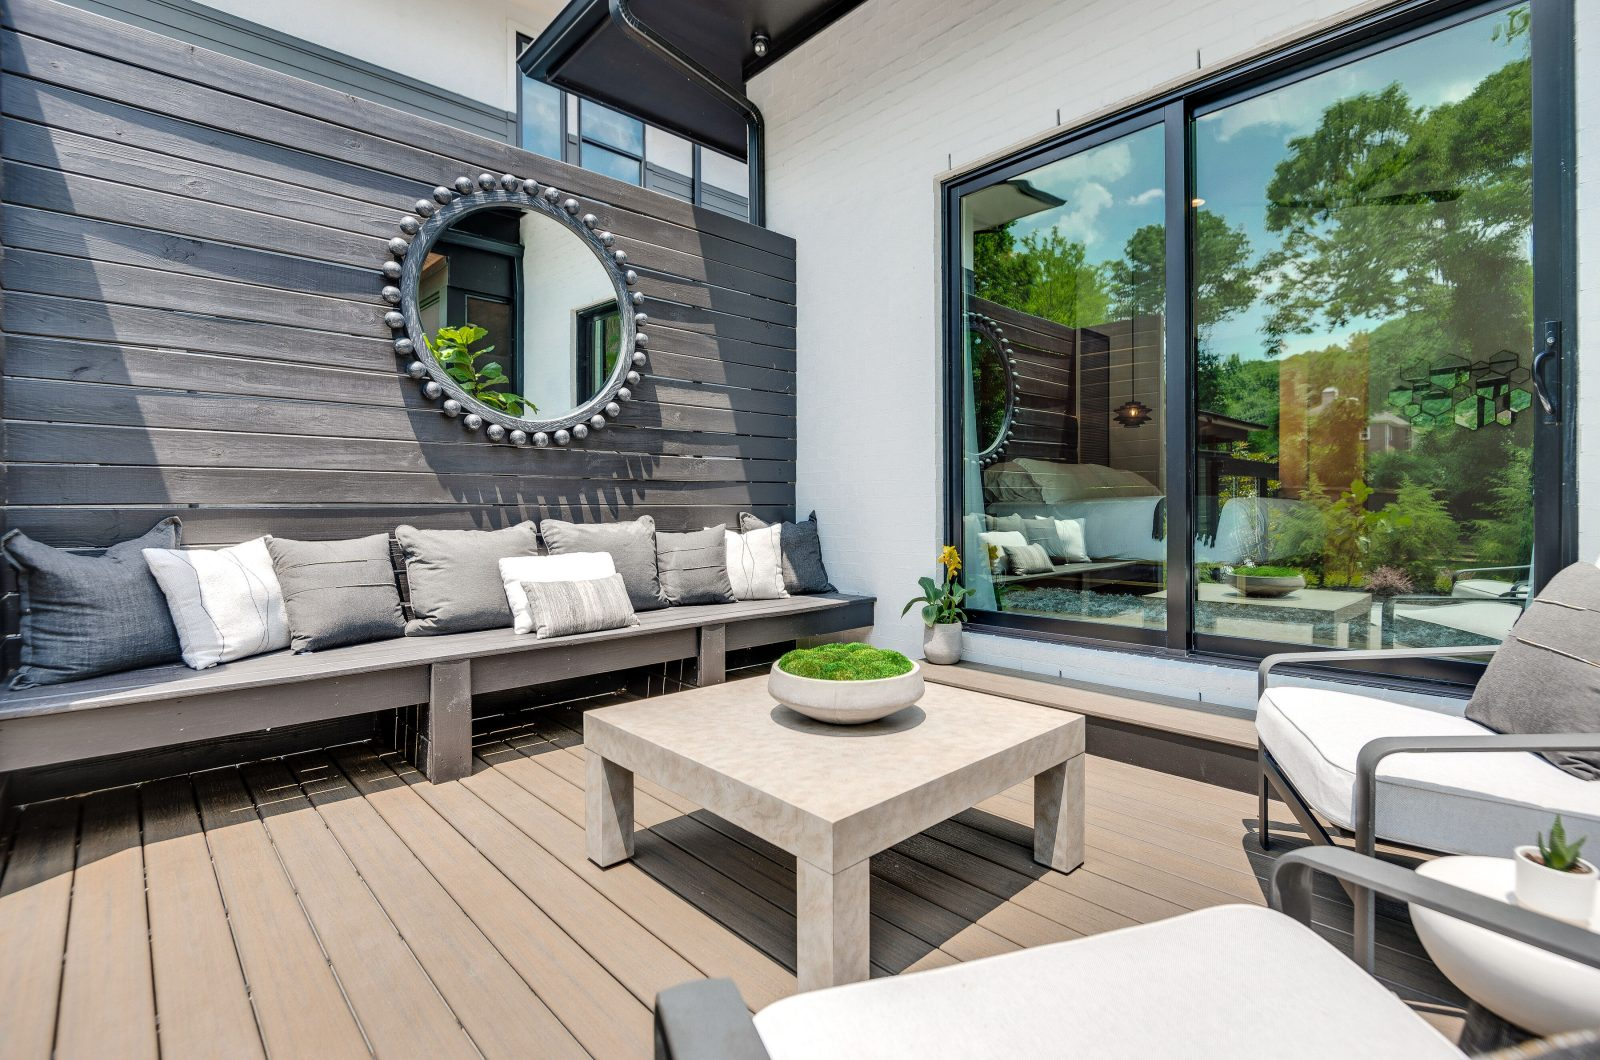 Angle 2 shot of backyard deck and lounge space in Green Hills TN